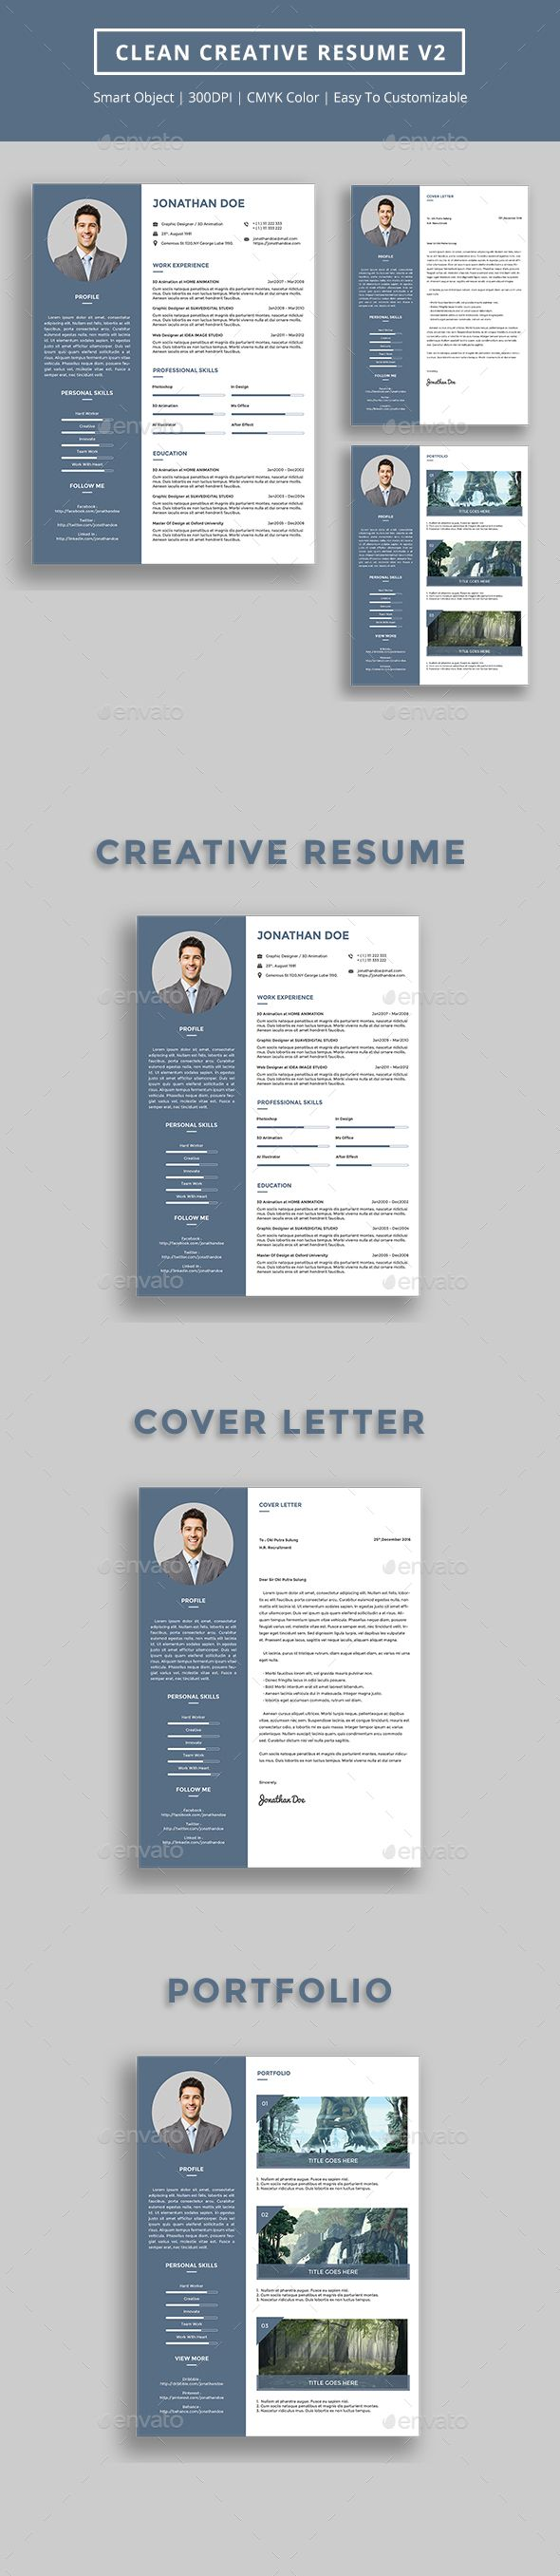 clean creative resume v2 resumes stationery template psd download here http